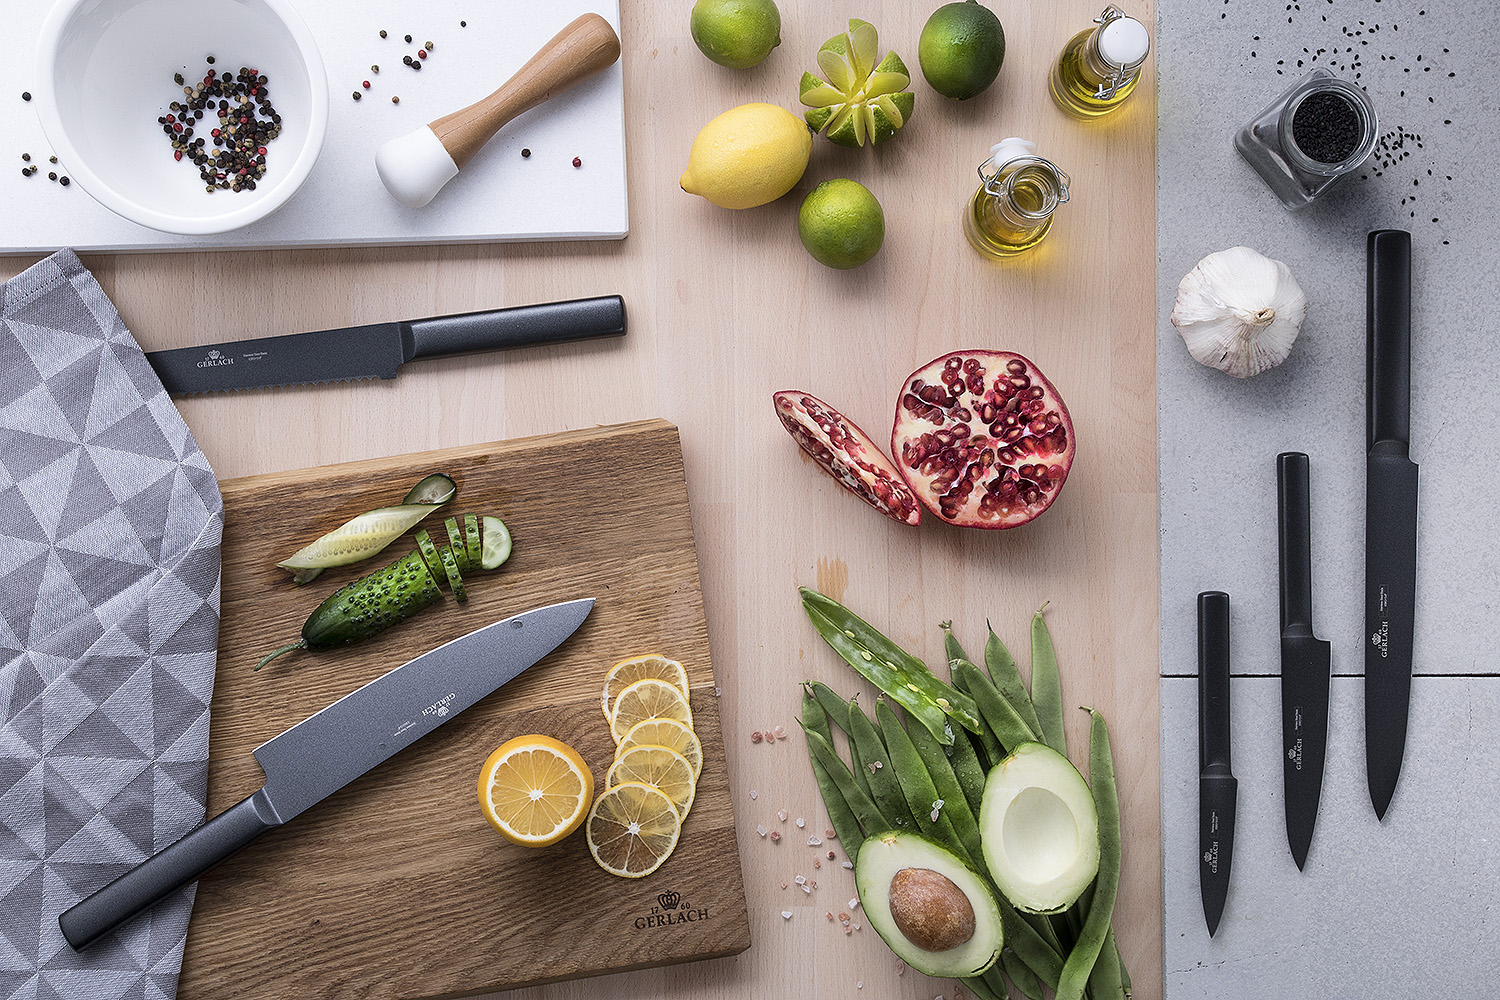 the Ambiente Black set of knives